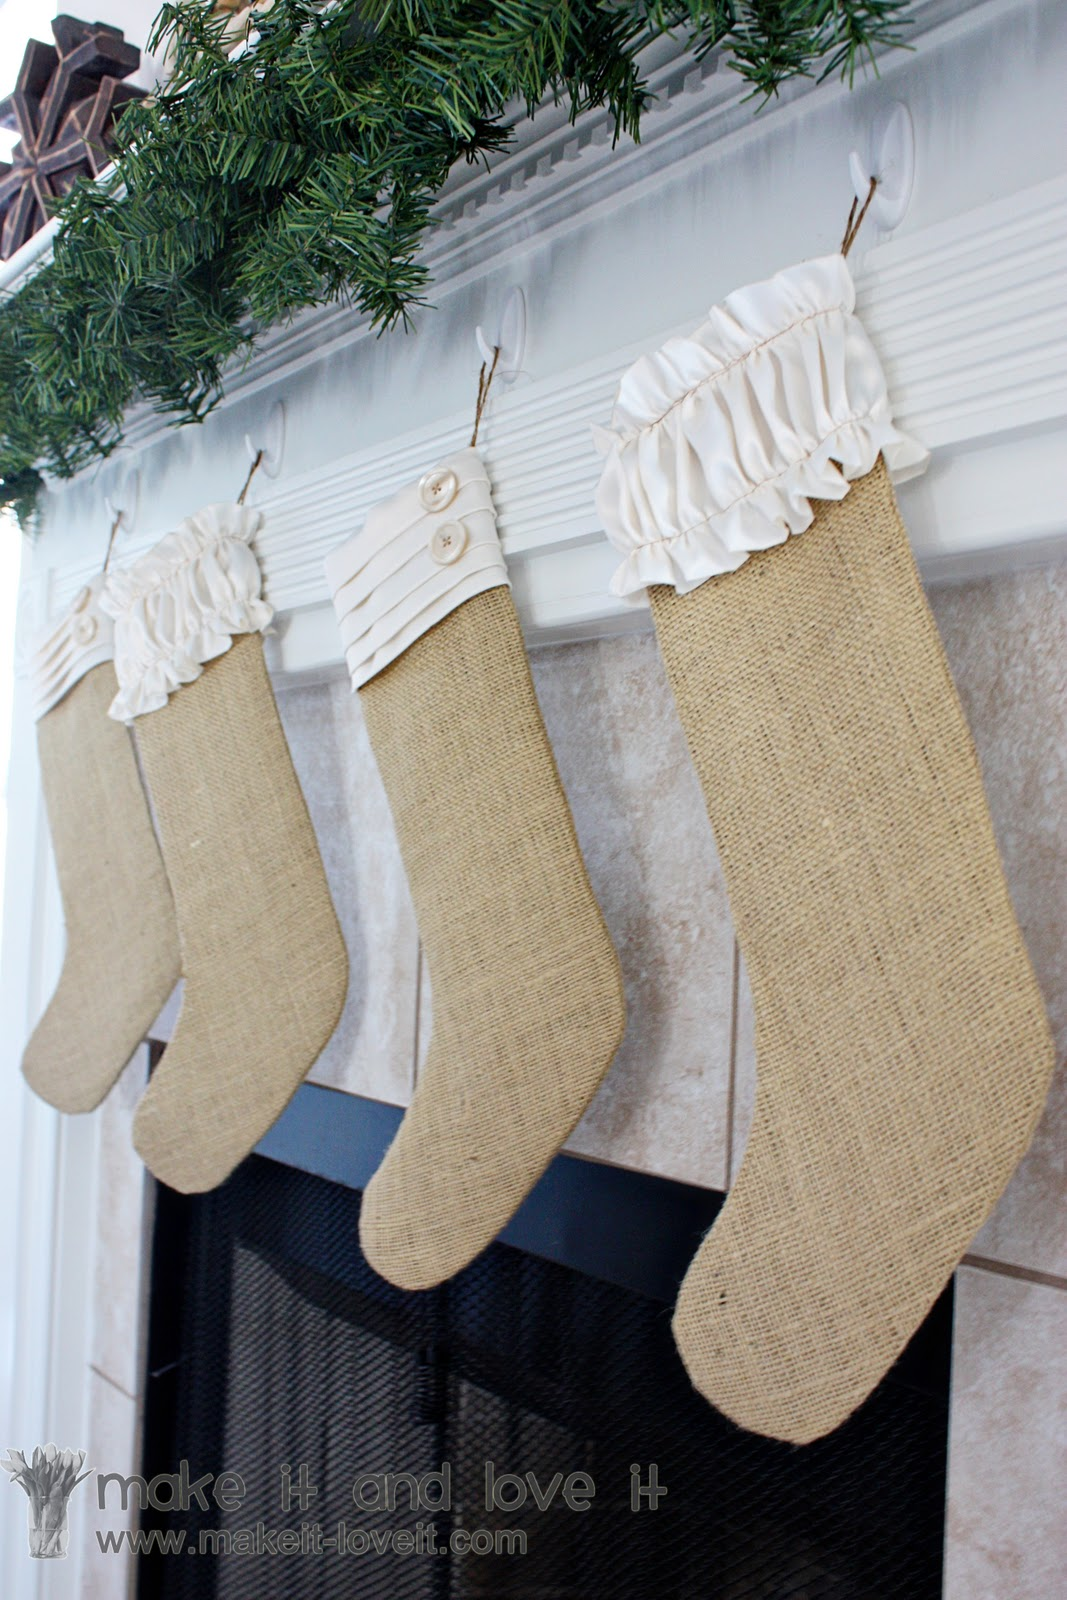 Burlap Christmas Stockings.Burlap Christmas Stockings Make It And Love It